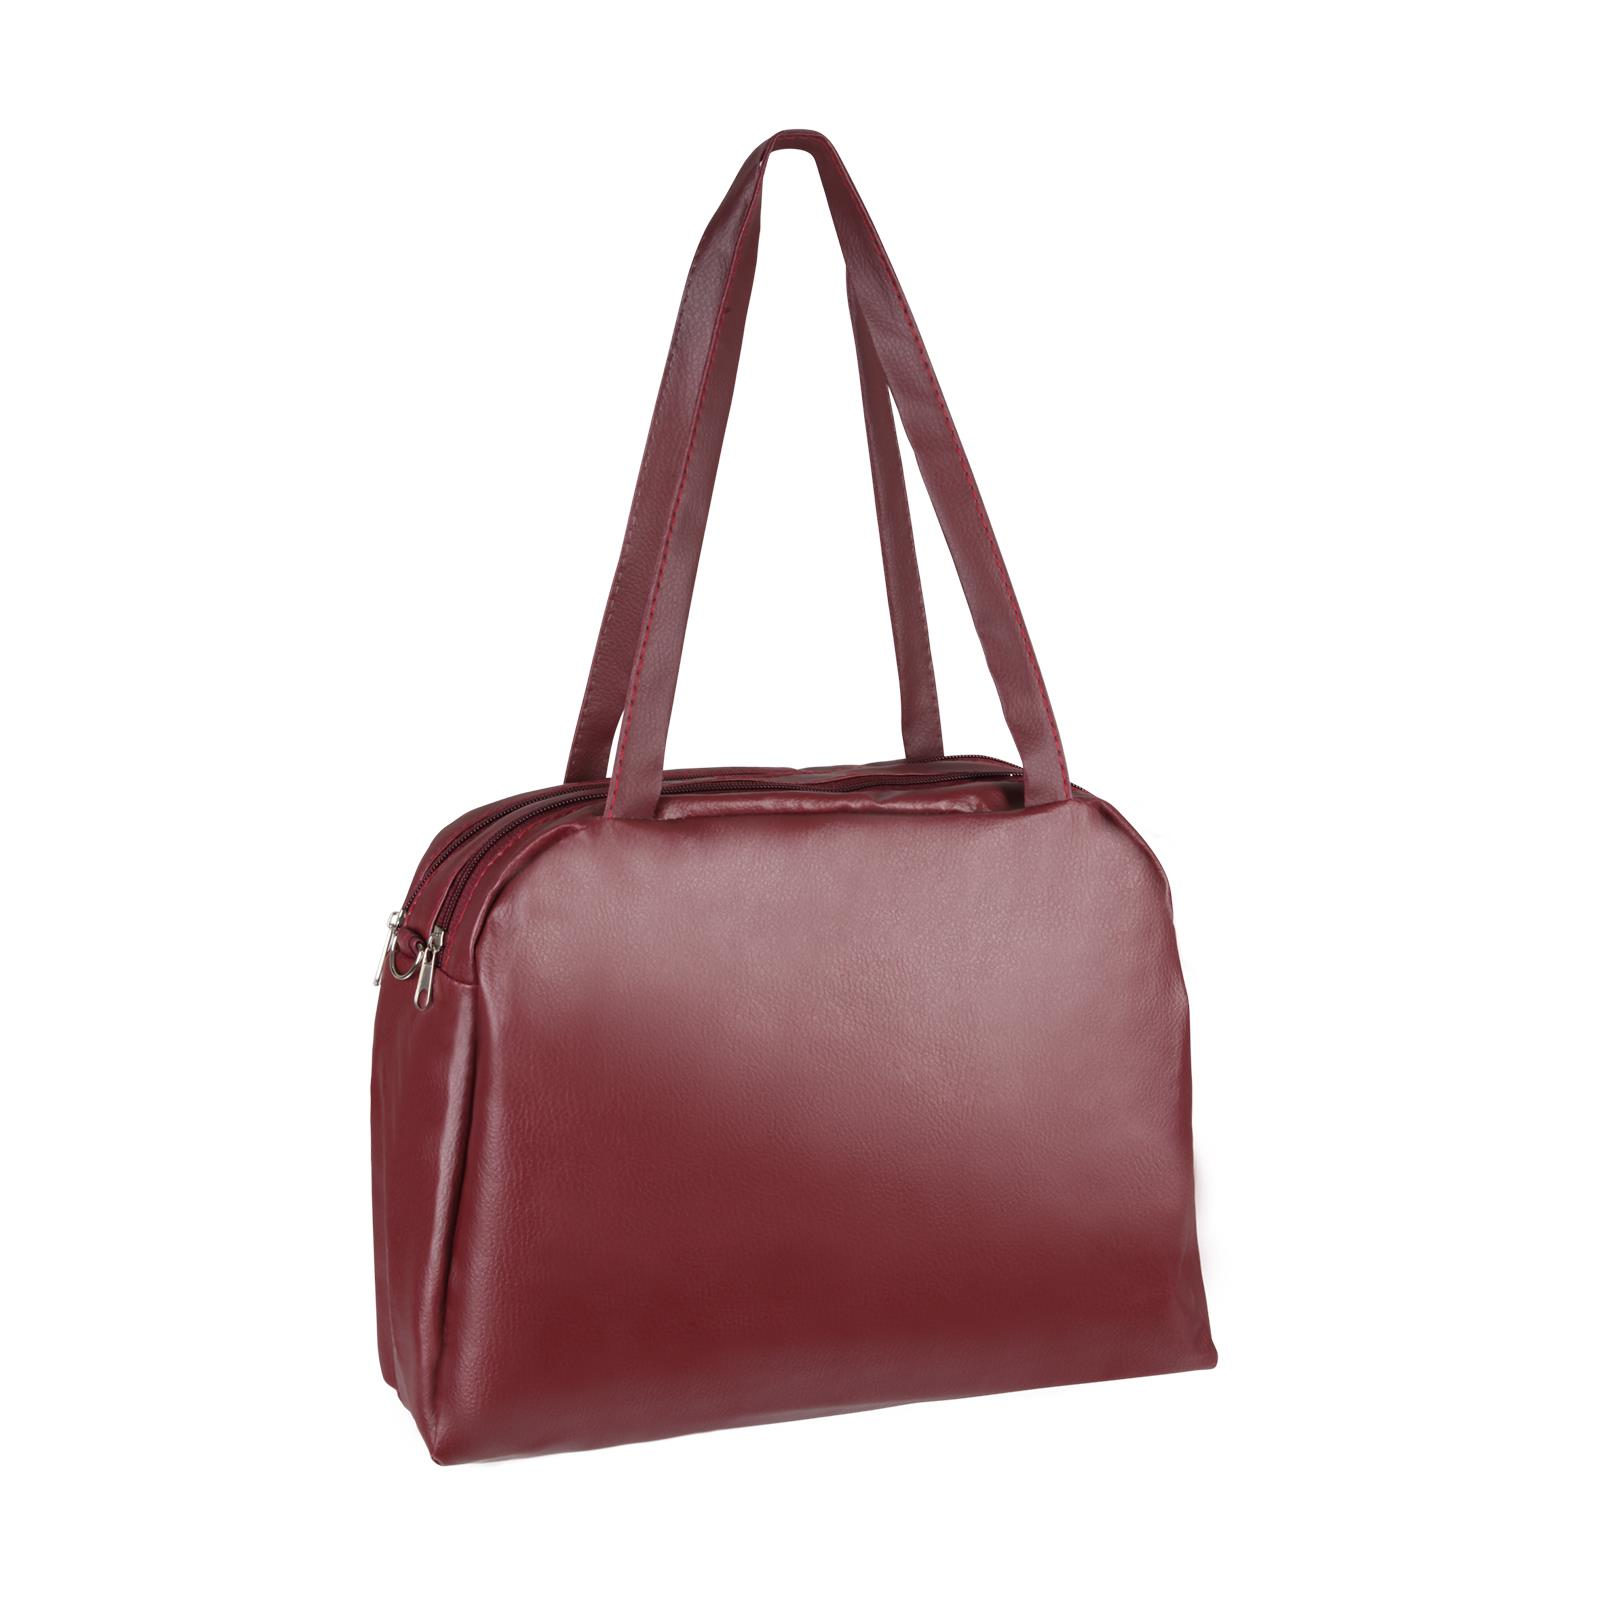 Medium-Handbag-Shoulder-Bowler-Bag-Vegan-Leather-Tote-Shop-Office-Work-Fashion thumbnail 10